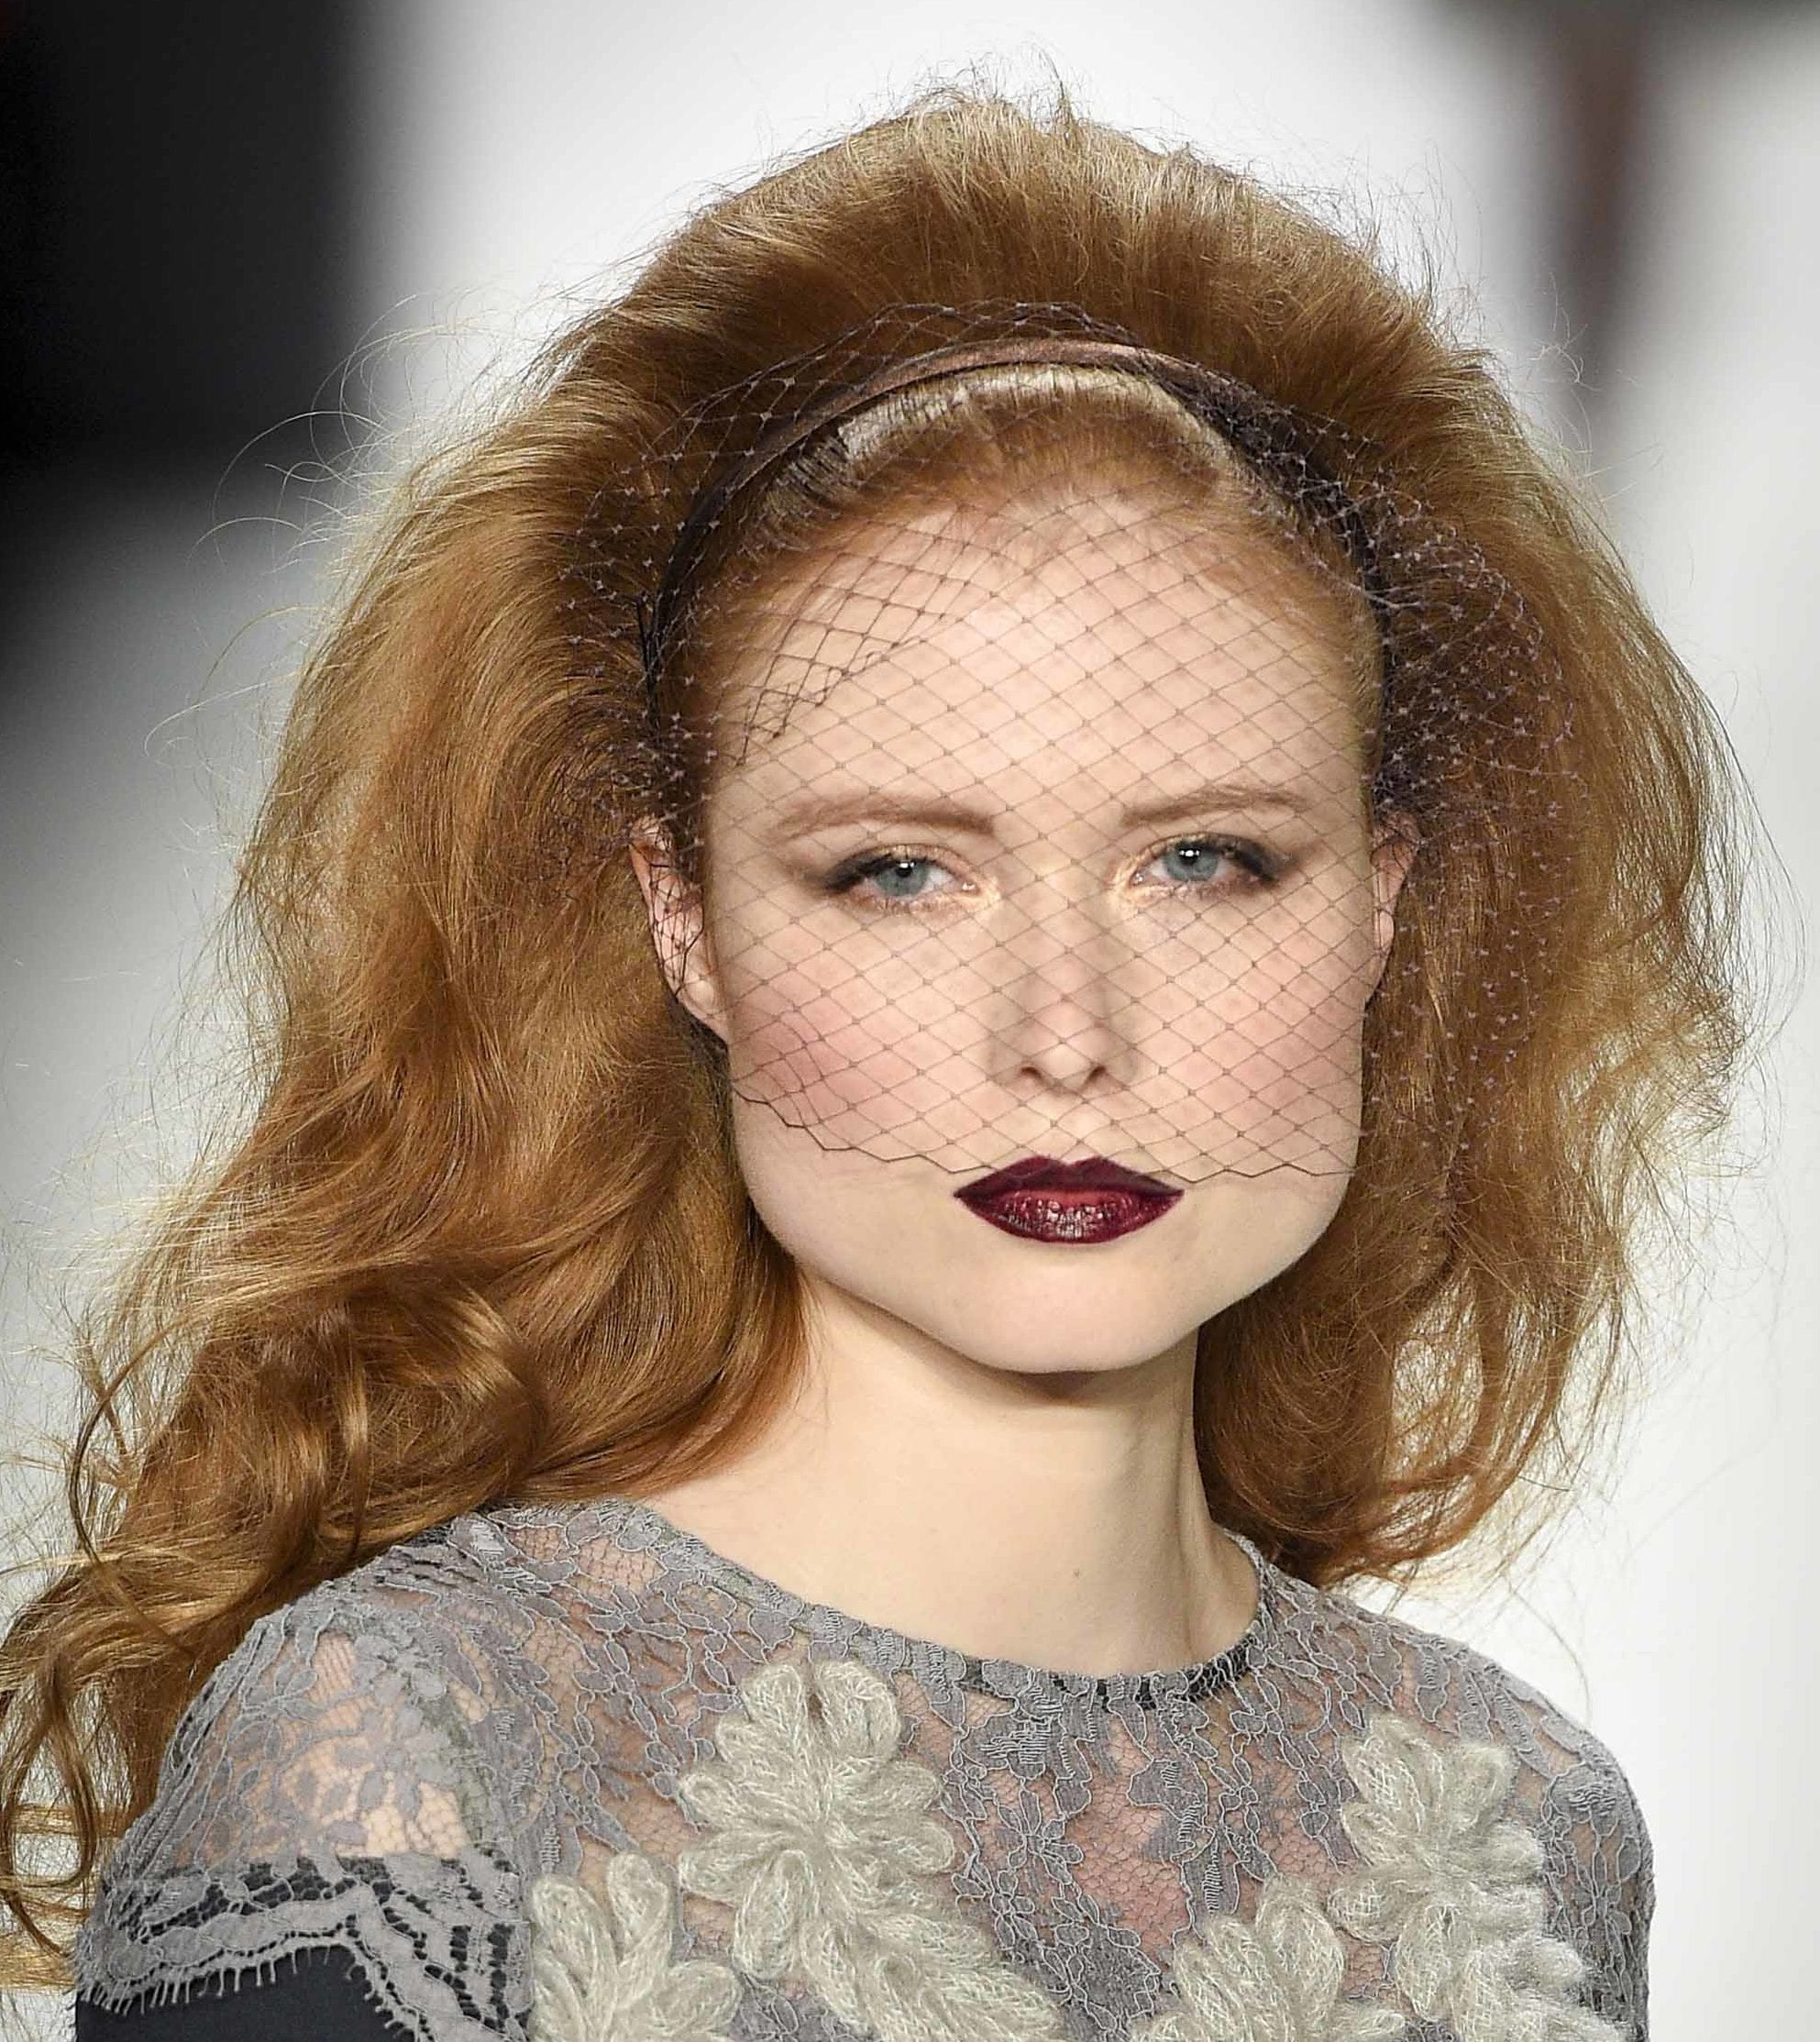 model with golden blonde curly hair in bouffant style wearing black net veil and grey lace floral pattern dress at aw16 fashion week in berlin